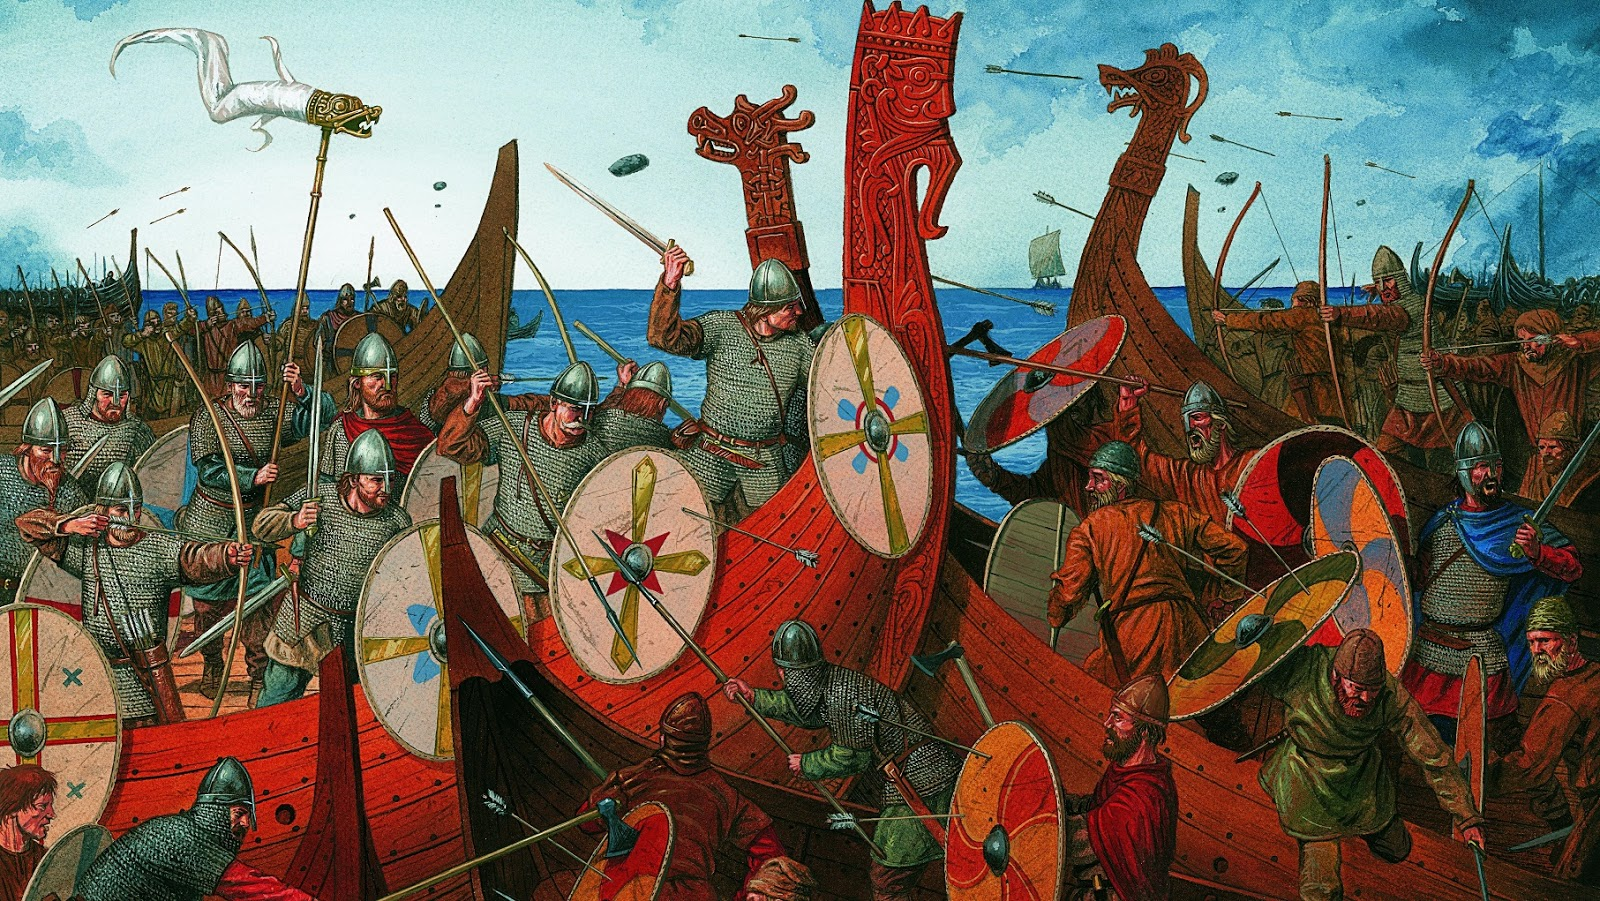 Viking History 871 Harsh Battle Between Danes And Wes